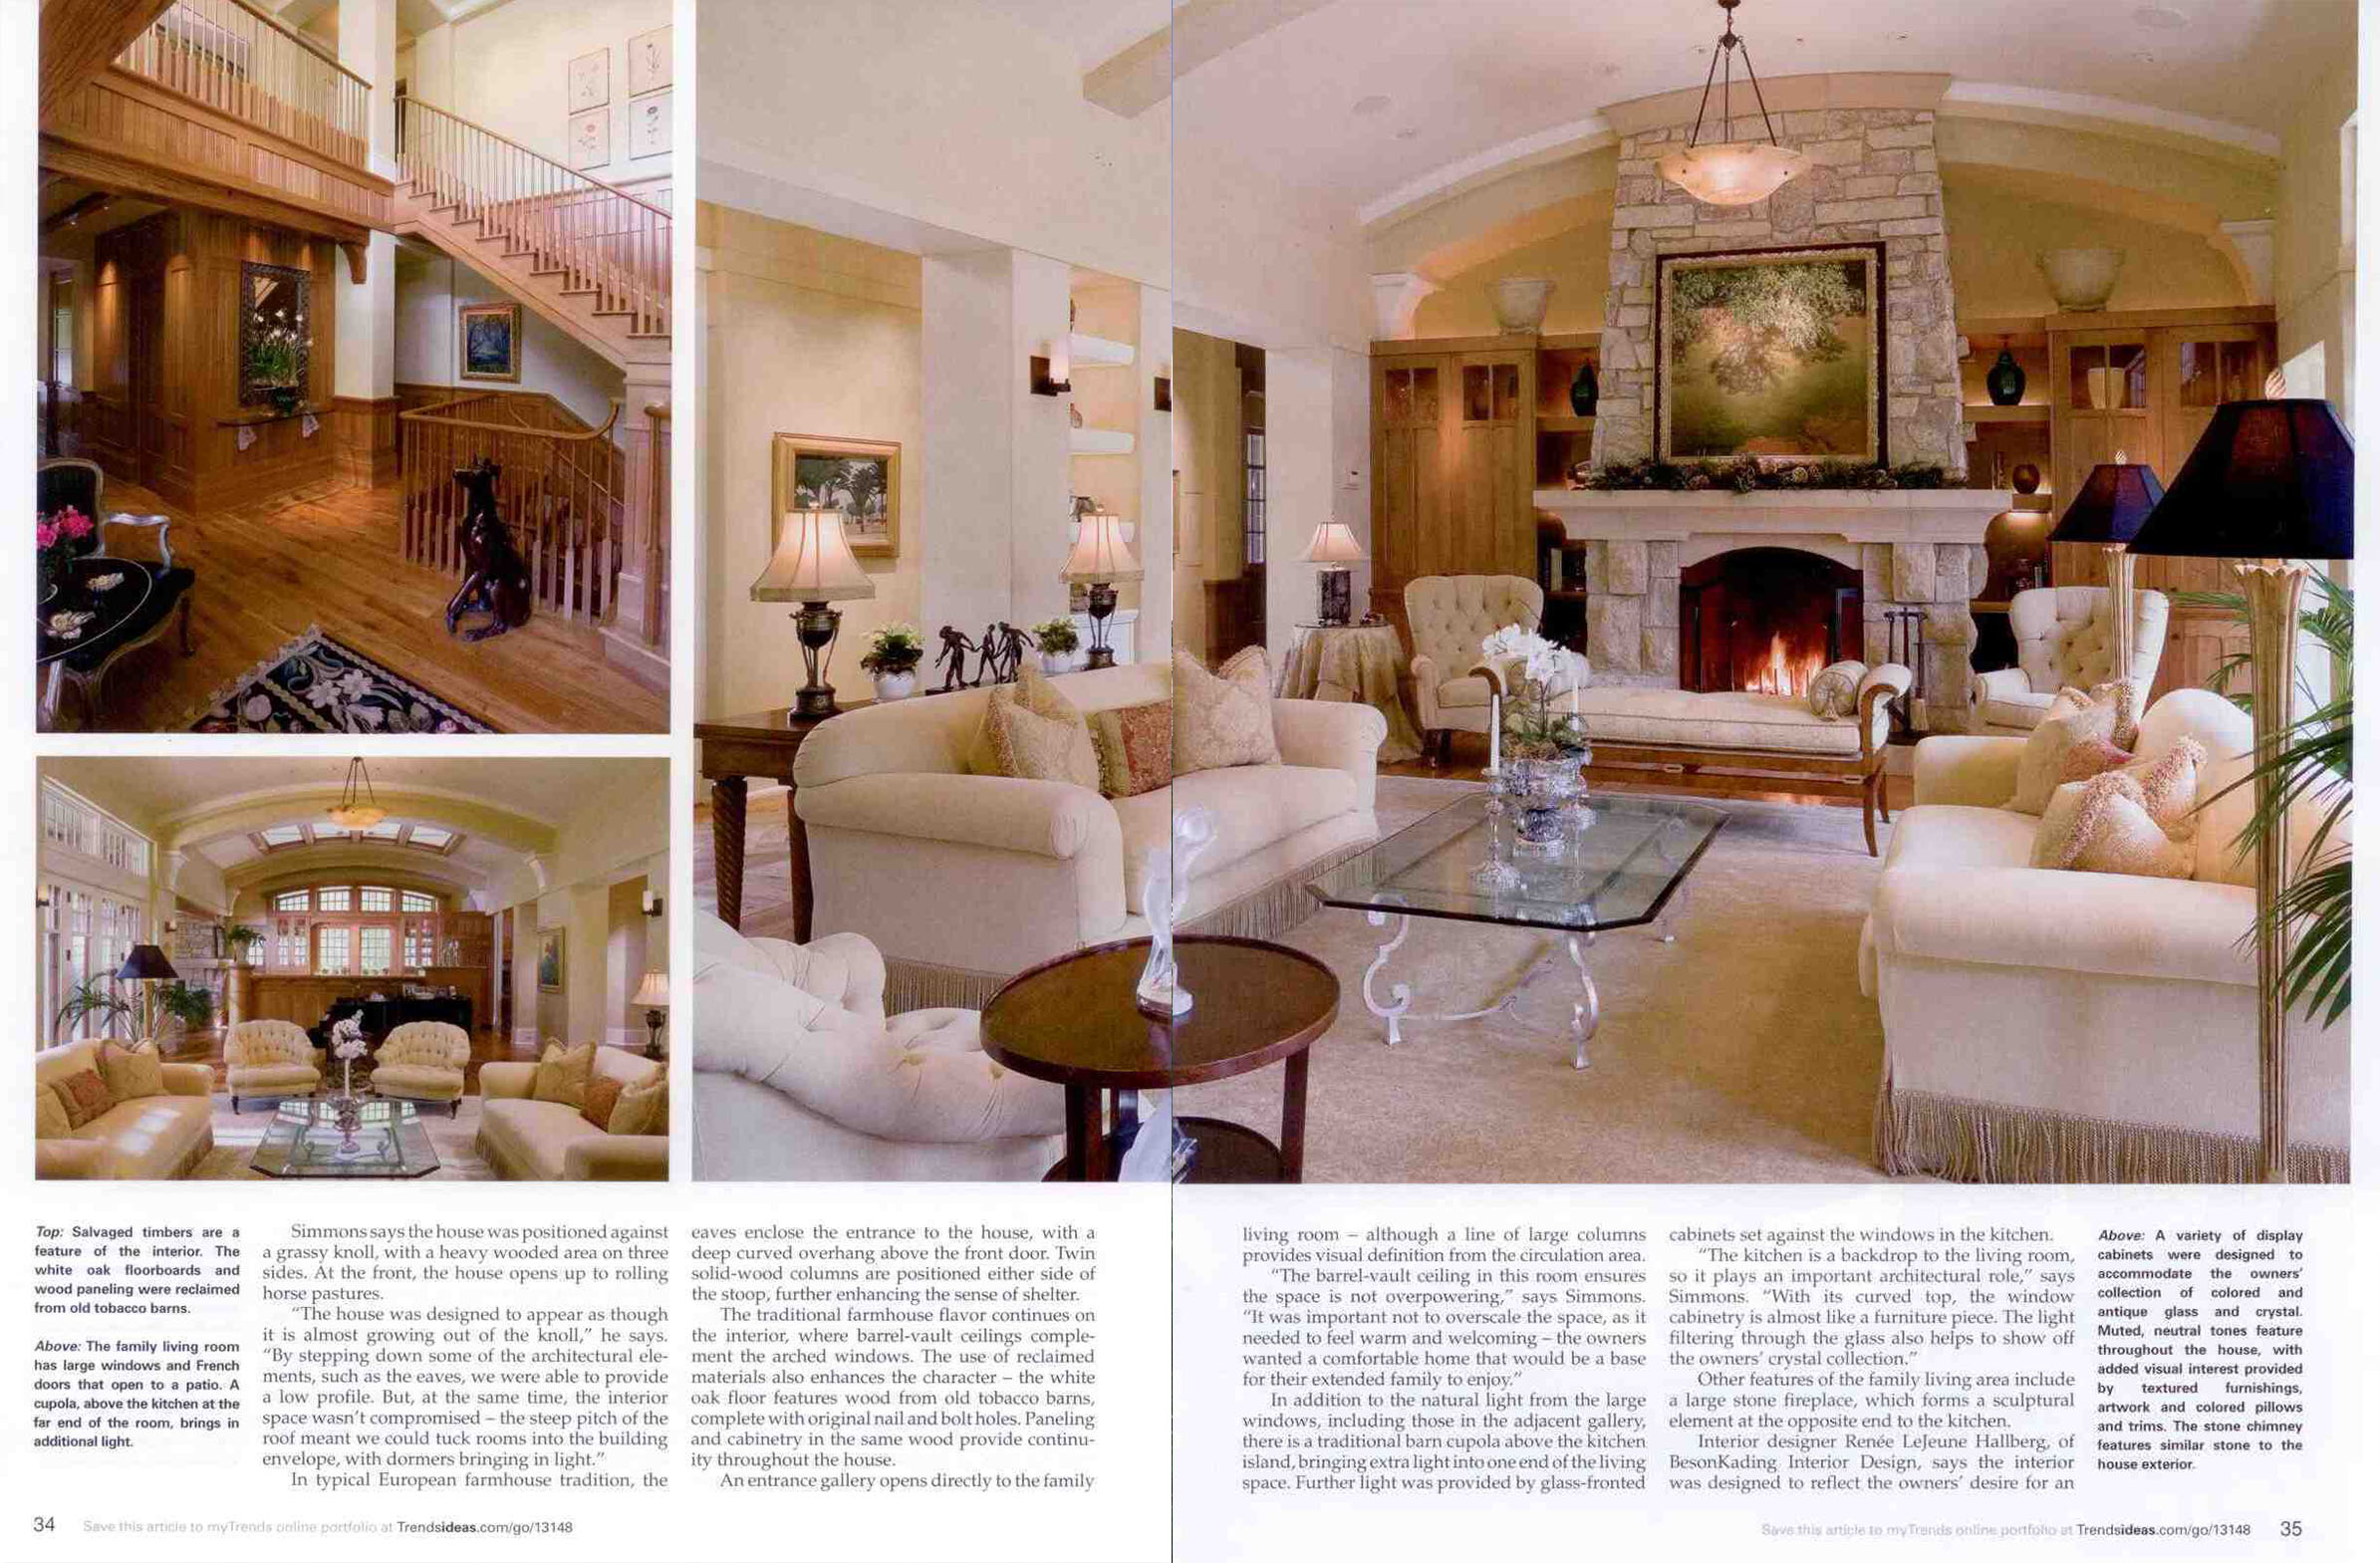 2013_Architectural Trends_Article3.jpg